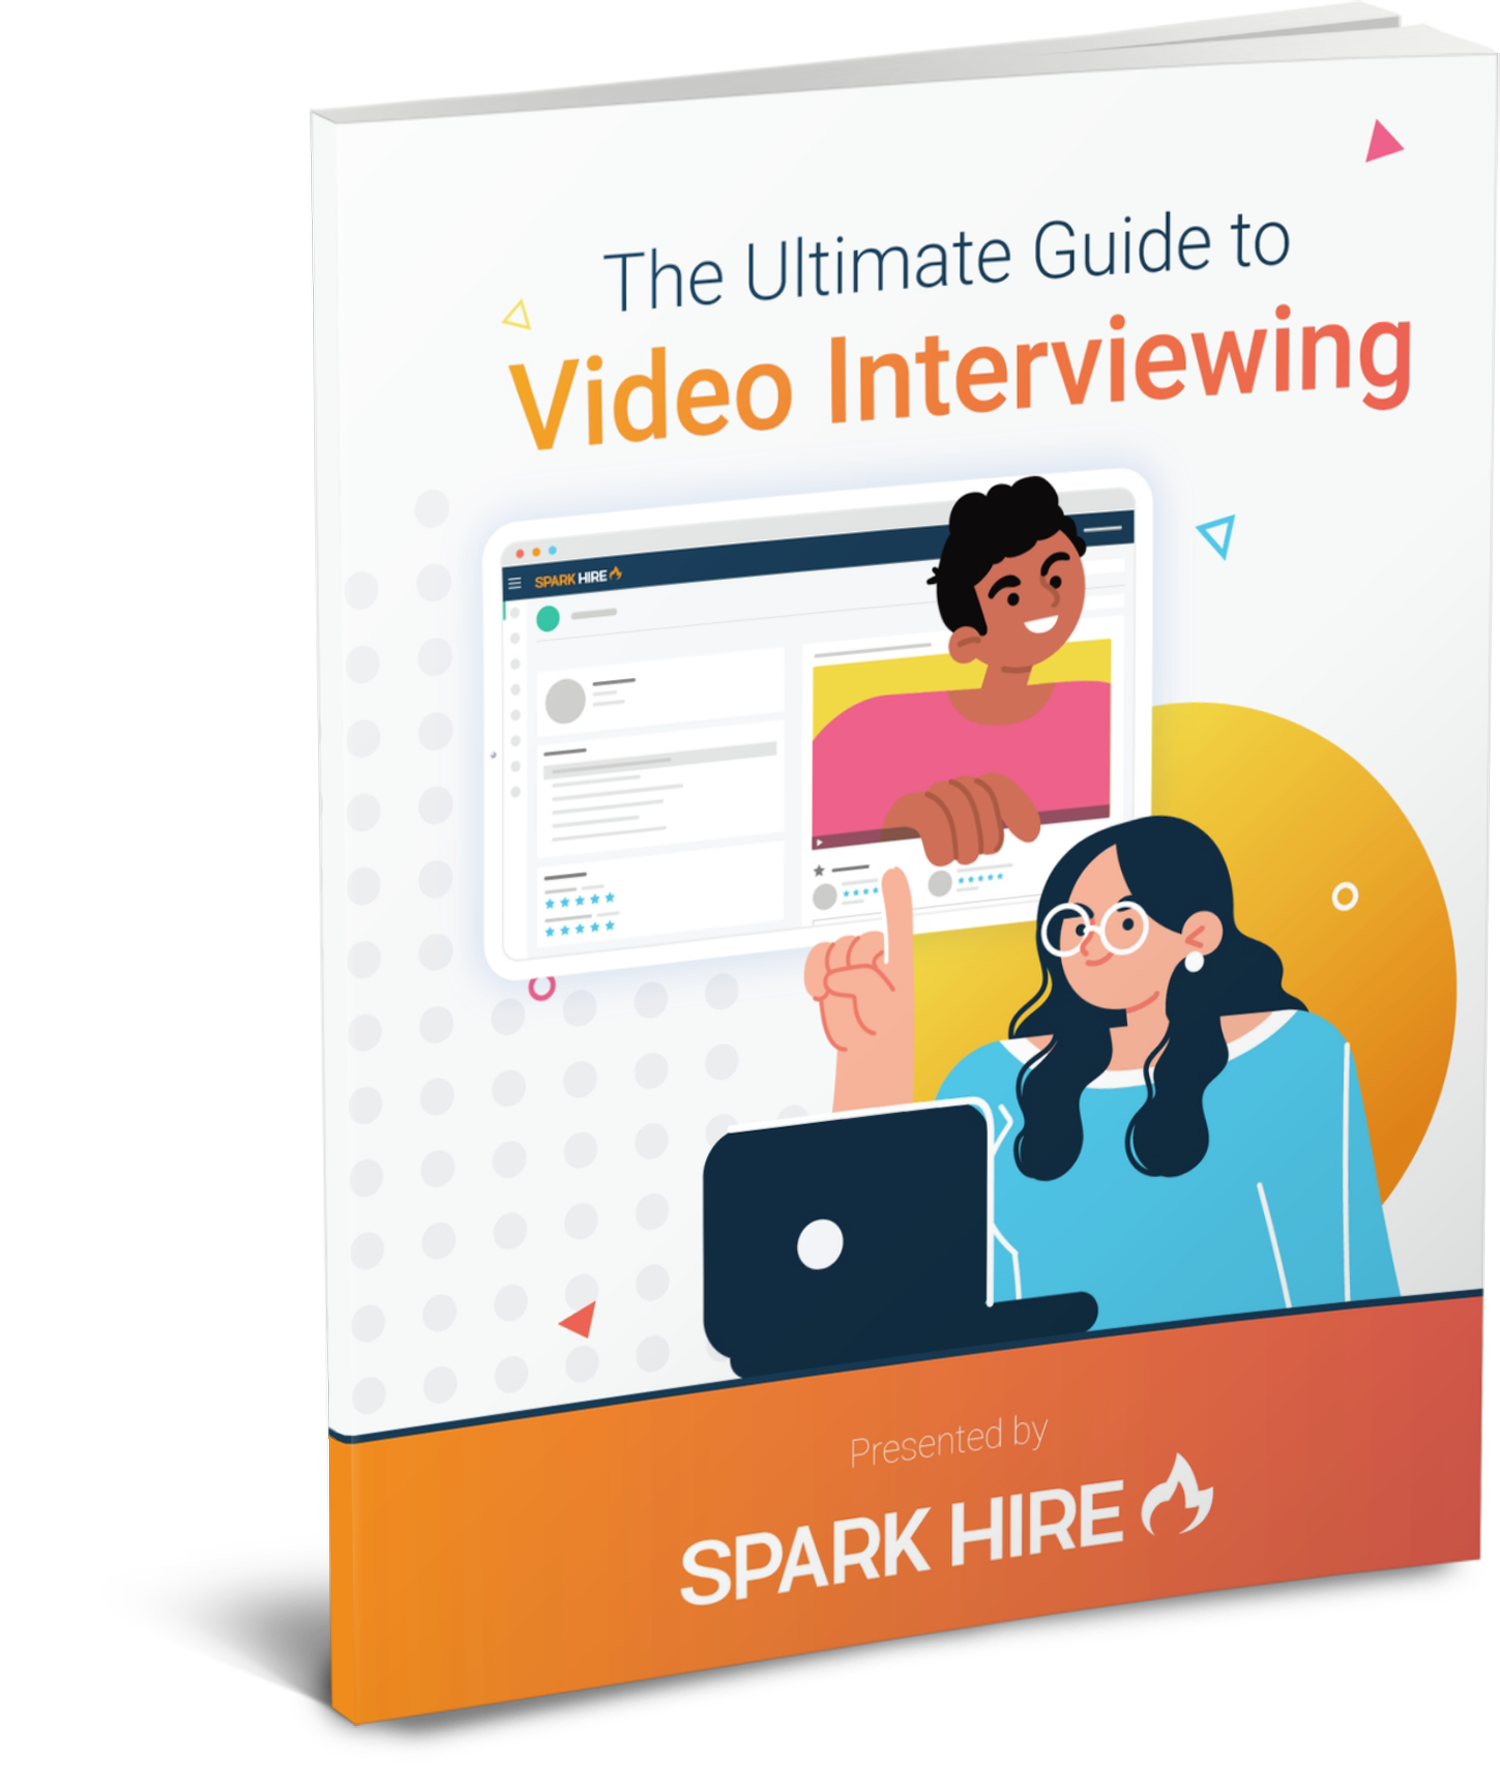 The Ultimate Guide to Video Interviewing eBook Cover